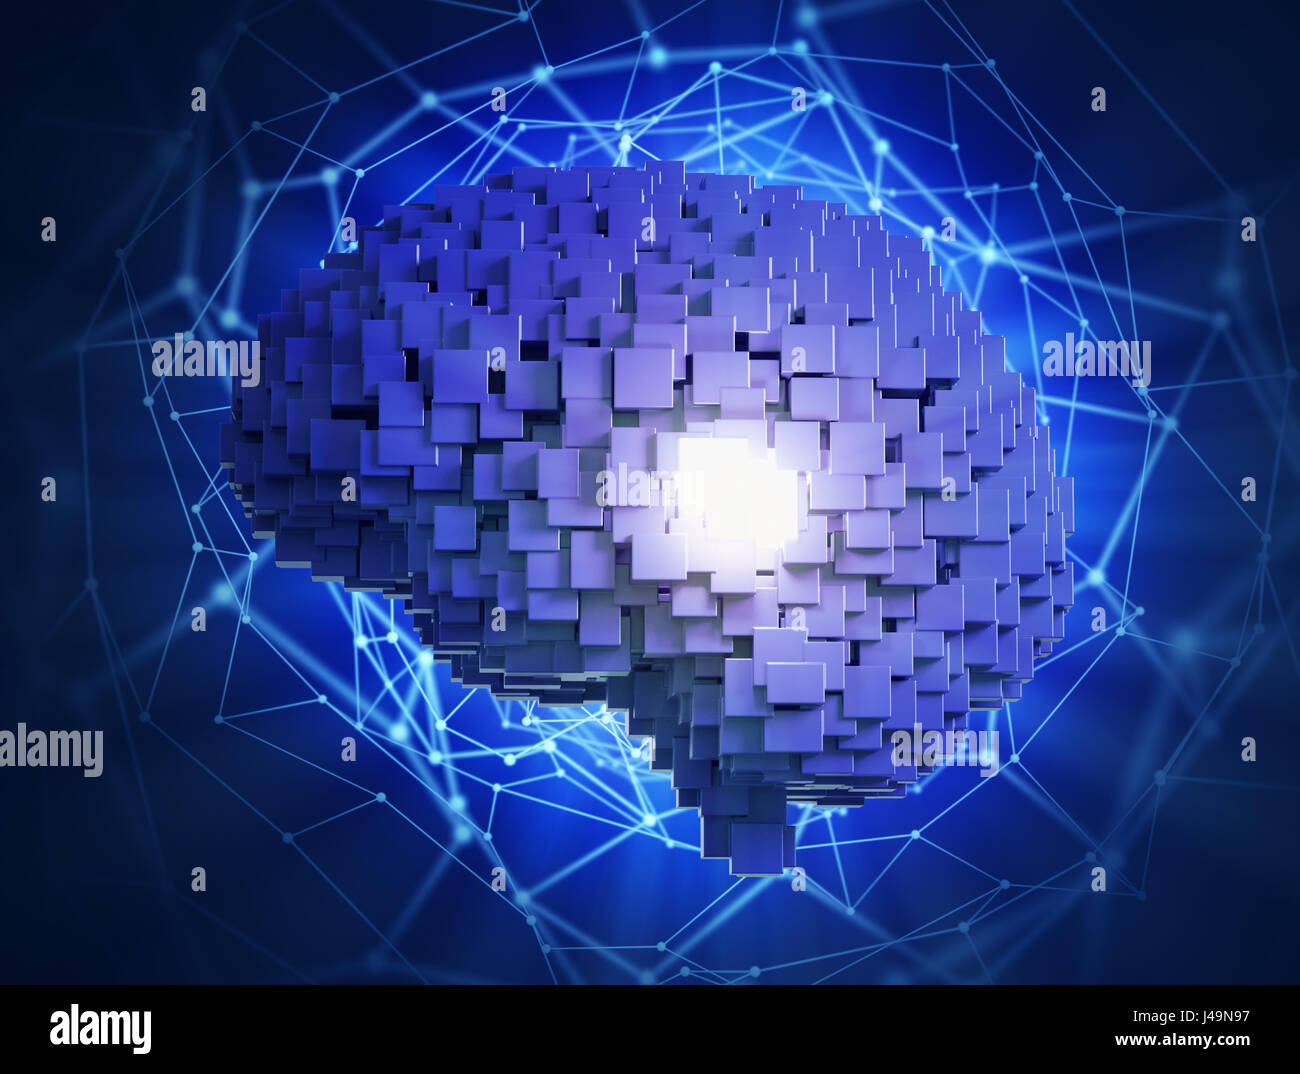 Artificial intelligence concept -3D illustration Stock Photo